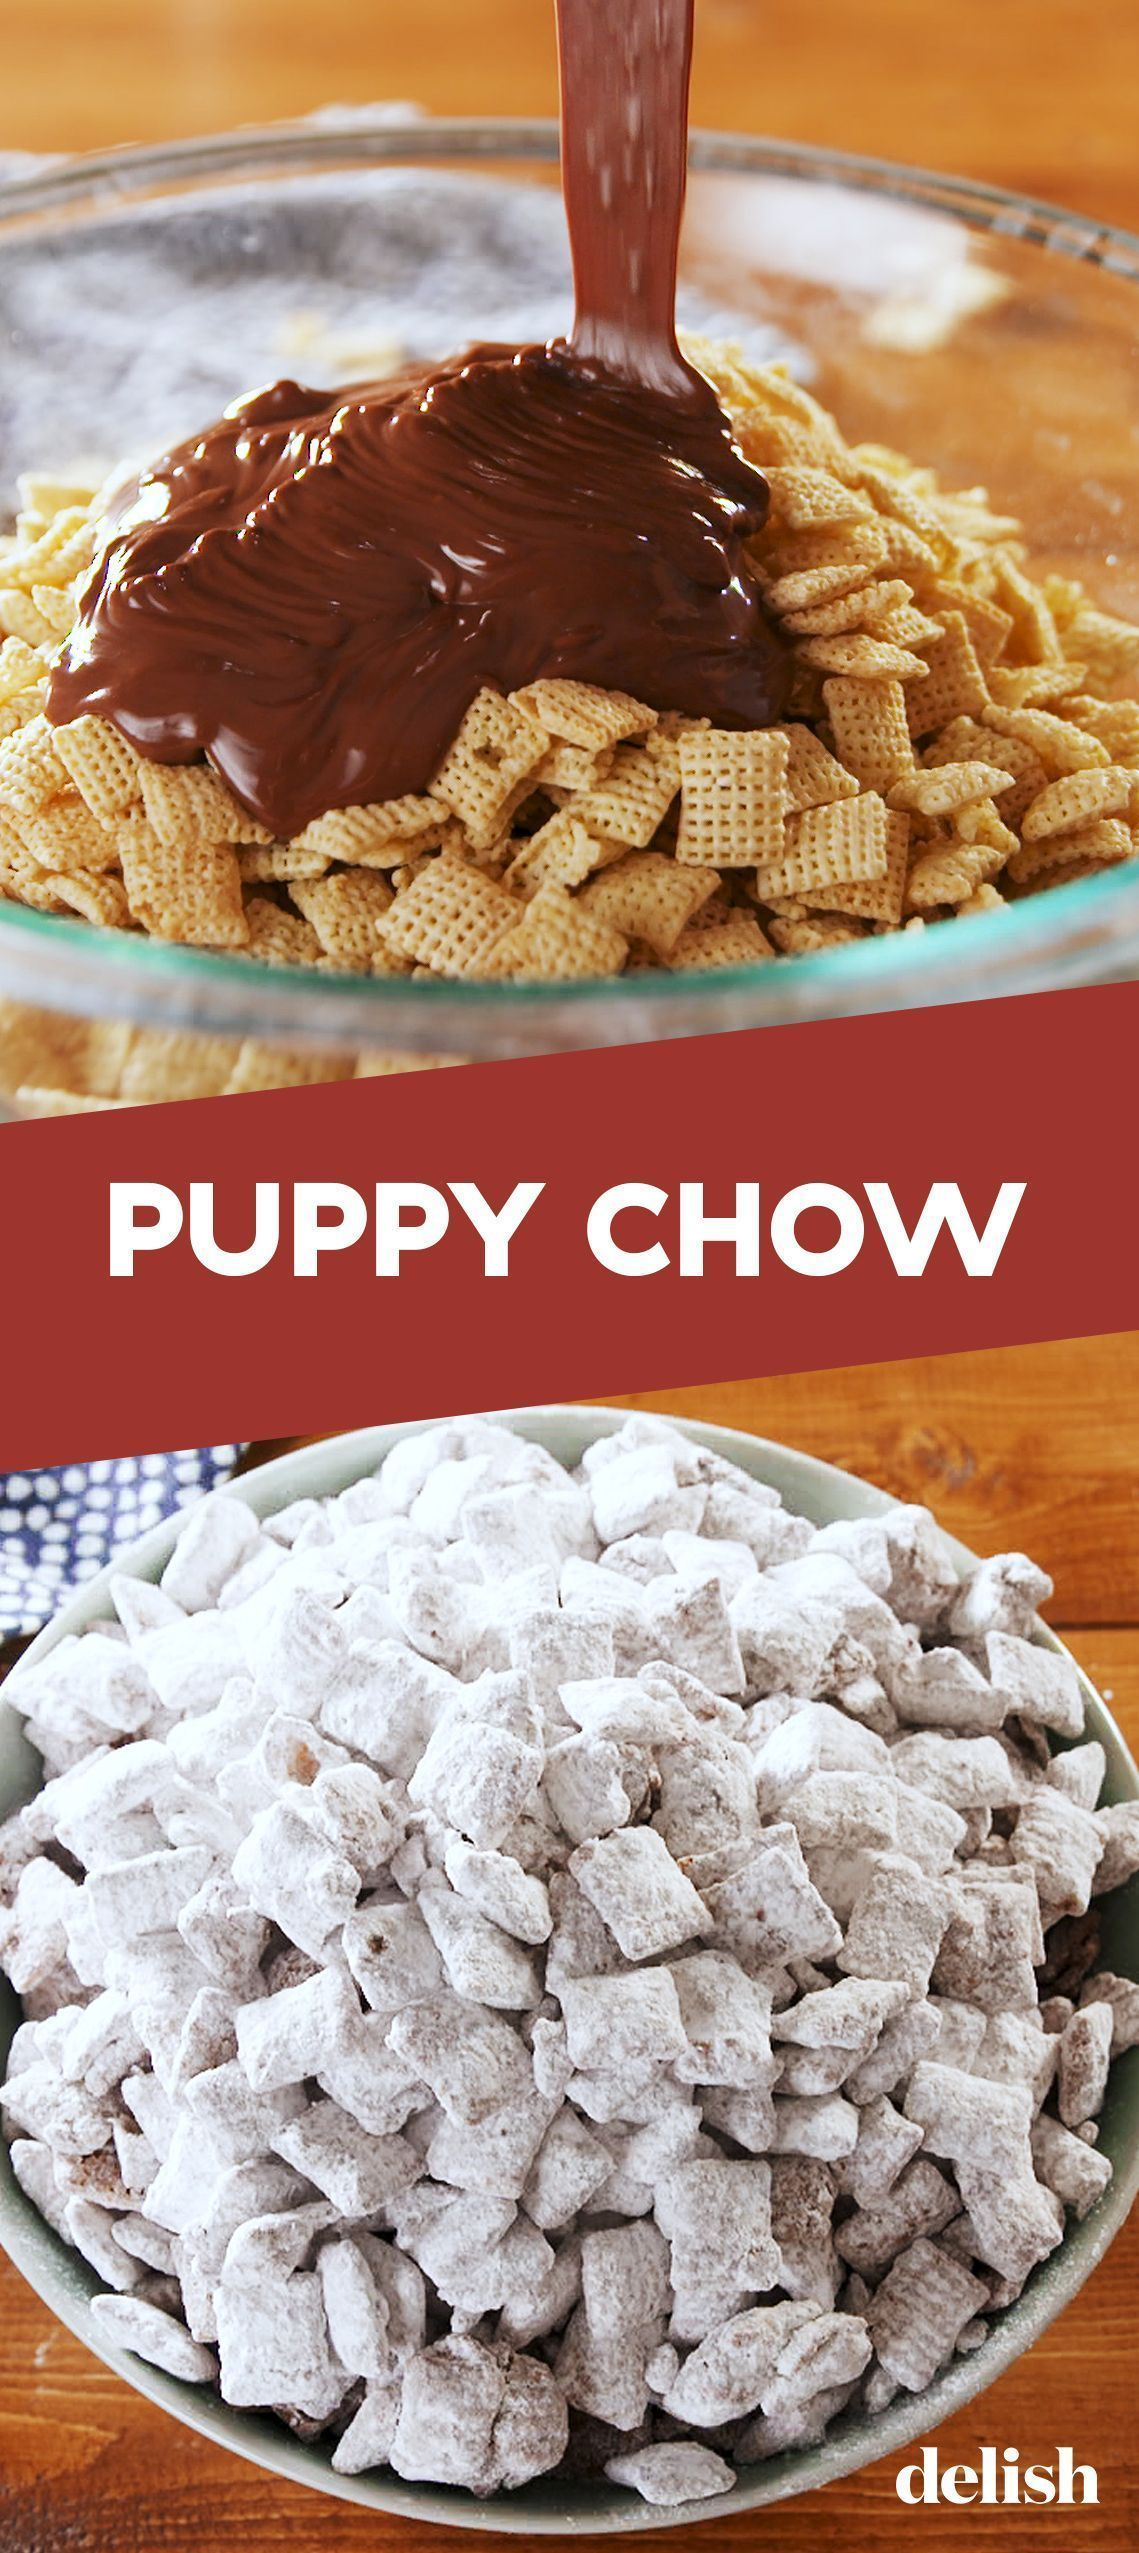 Puppy Chow Chex Mix Recipe Healthy Puppy Chow Chex Mix Recipe Puppy Puppy Chow Chex M In 2020 Puppy Chow Recipes Puppy Chow Chex Mix Recipe Chex Mix Puppy Chow